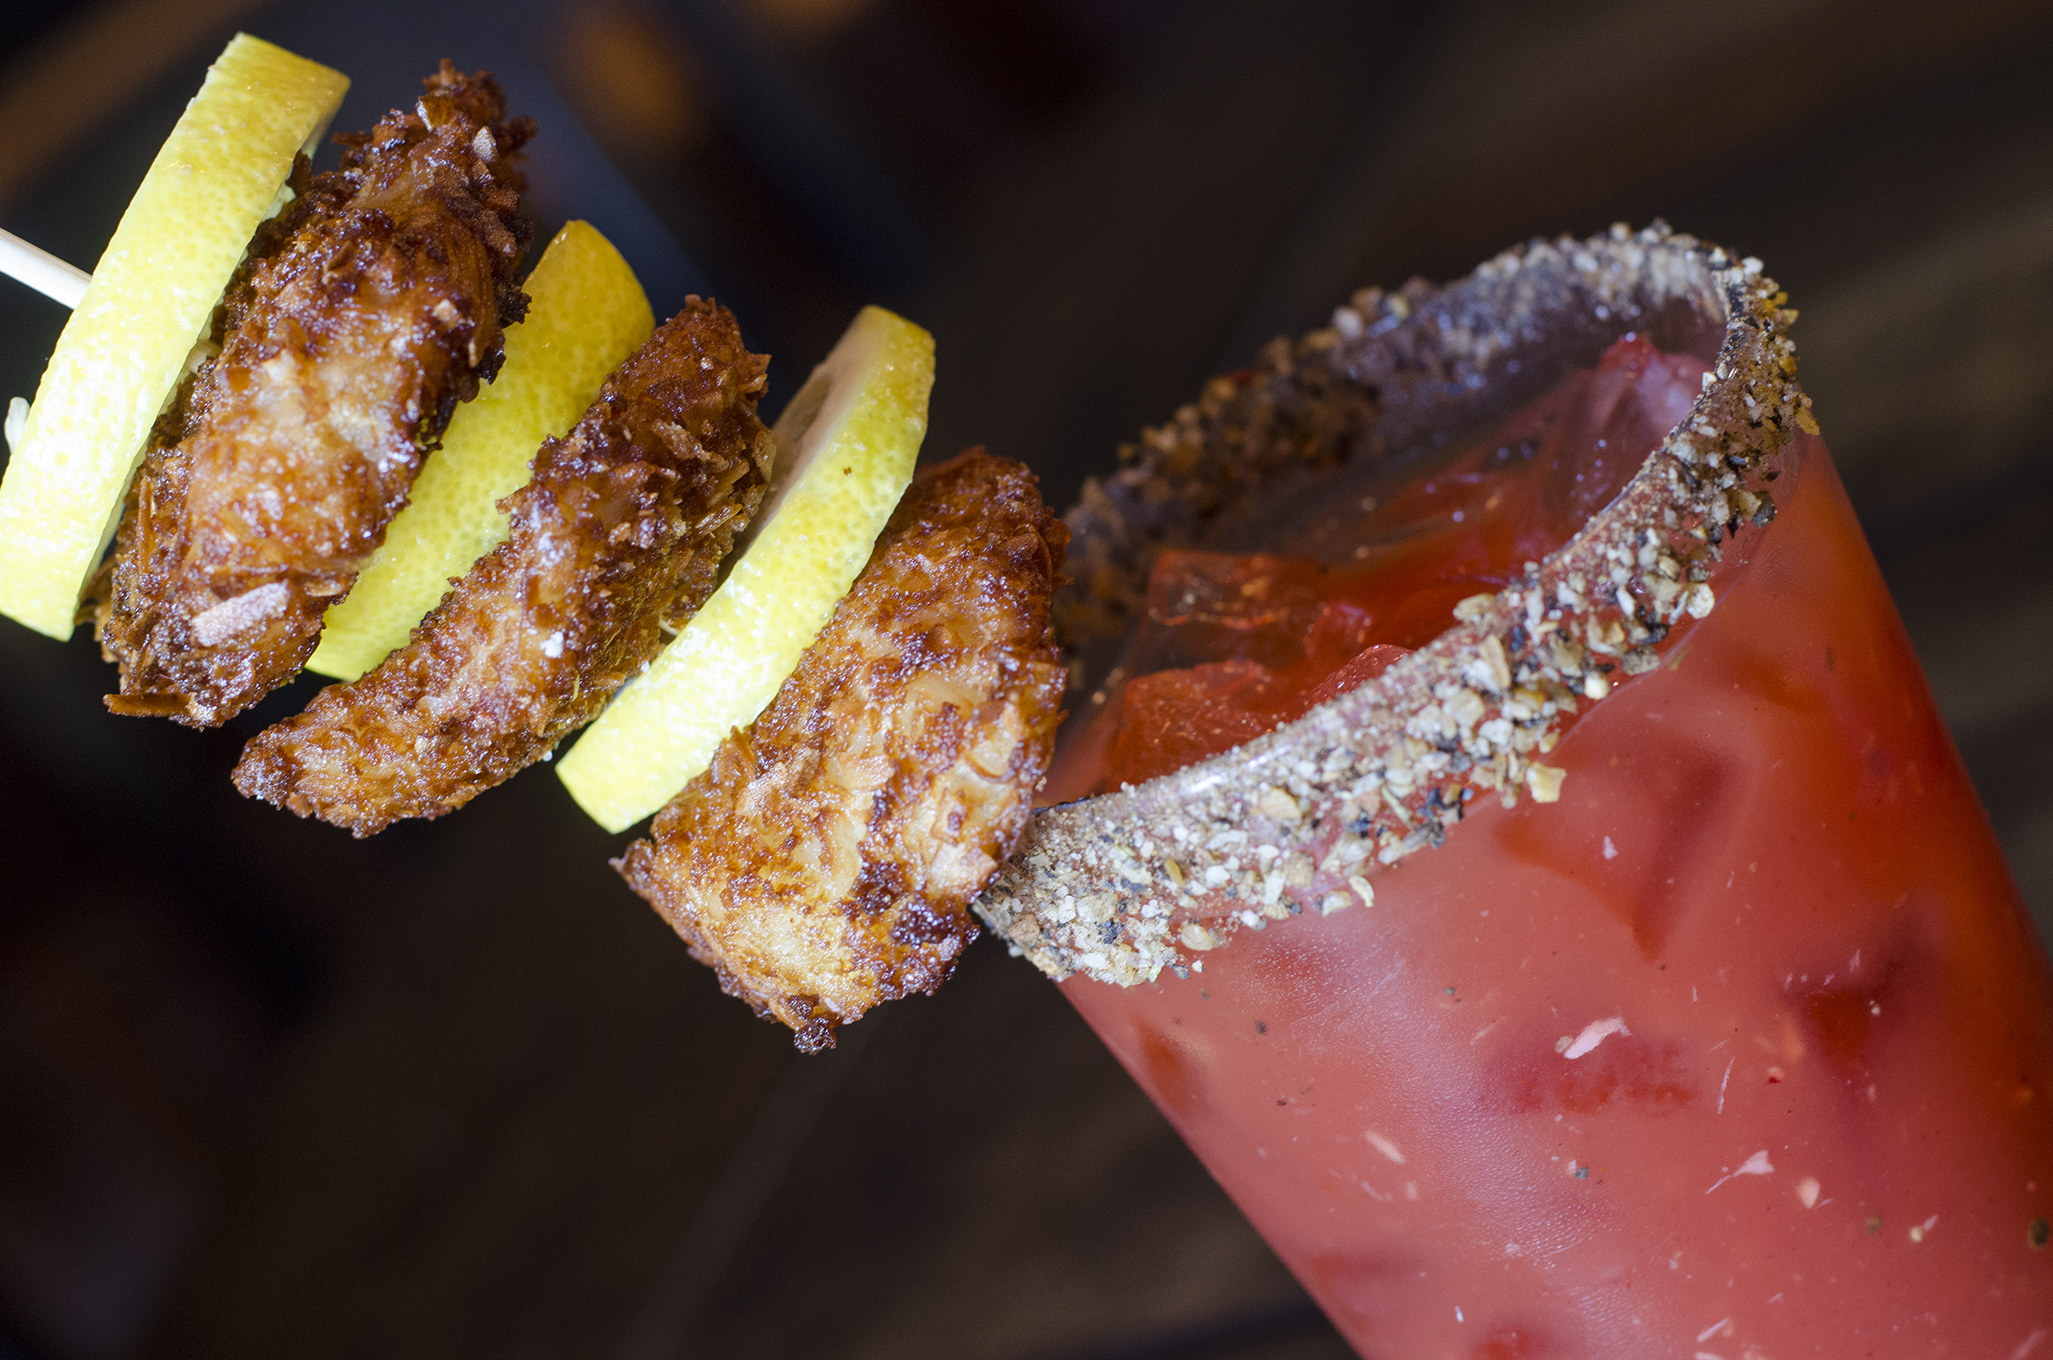 The Caribbean Dream Caesar from Walkerville Eatery in Windsor, Ontario.